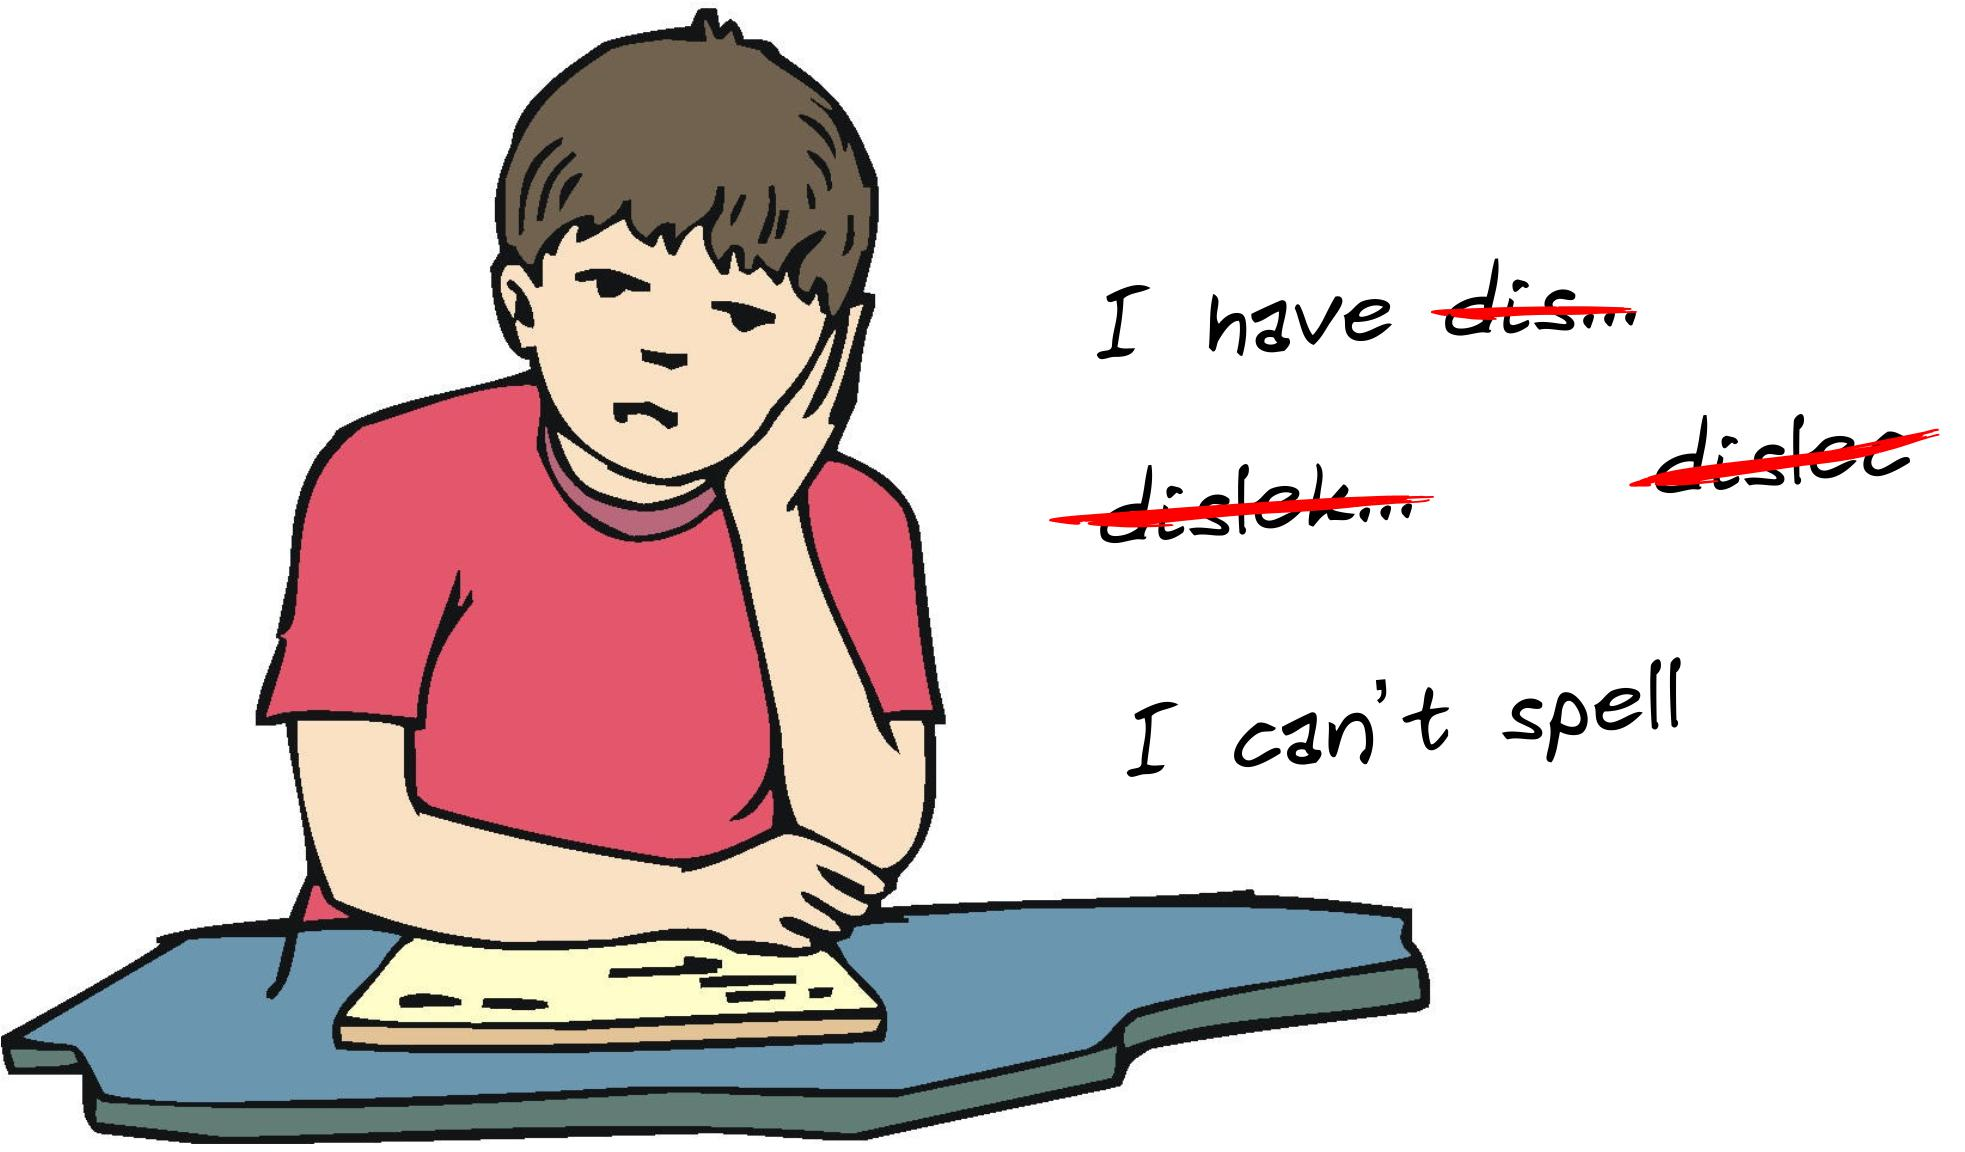 Worksheet Dyslexic Kids special care for adhd and dyslexic children the intuition blog image